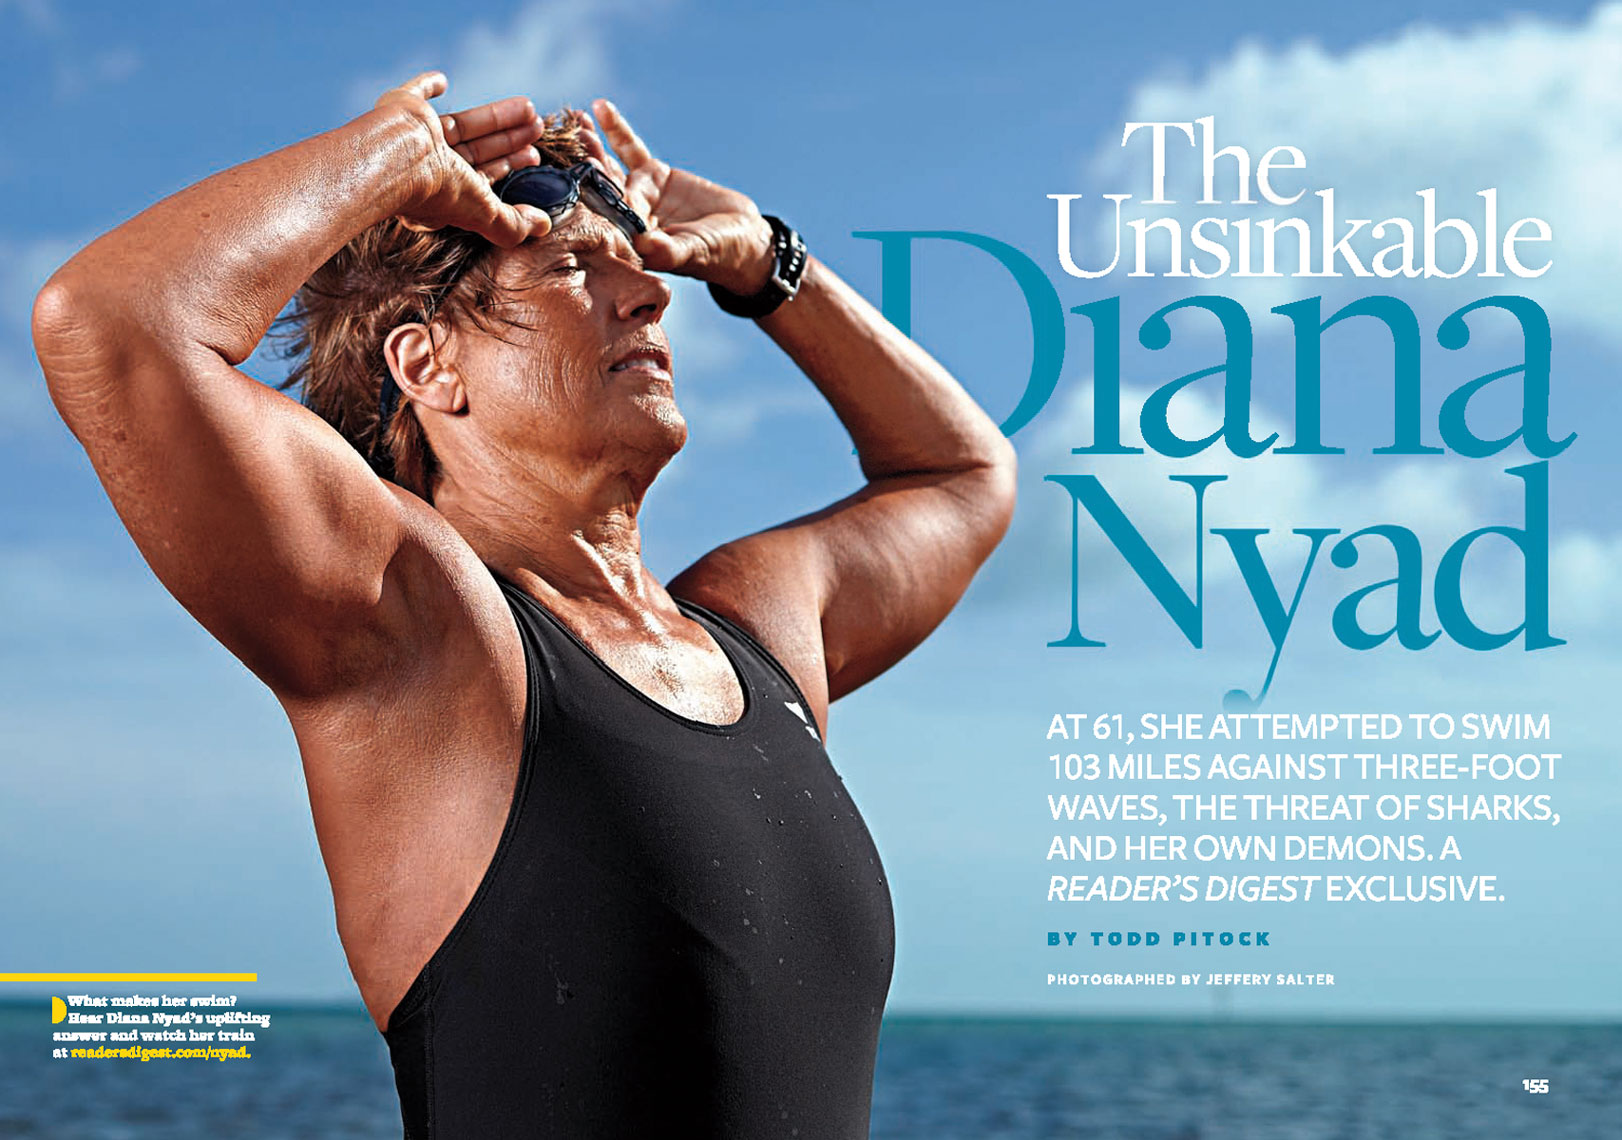 DianaNyad| photographed by  Miami  Editorial and  Commercial photographer Jeffery Salter